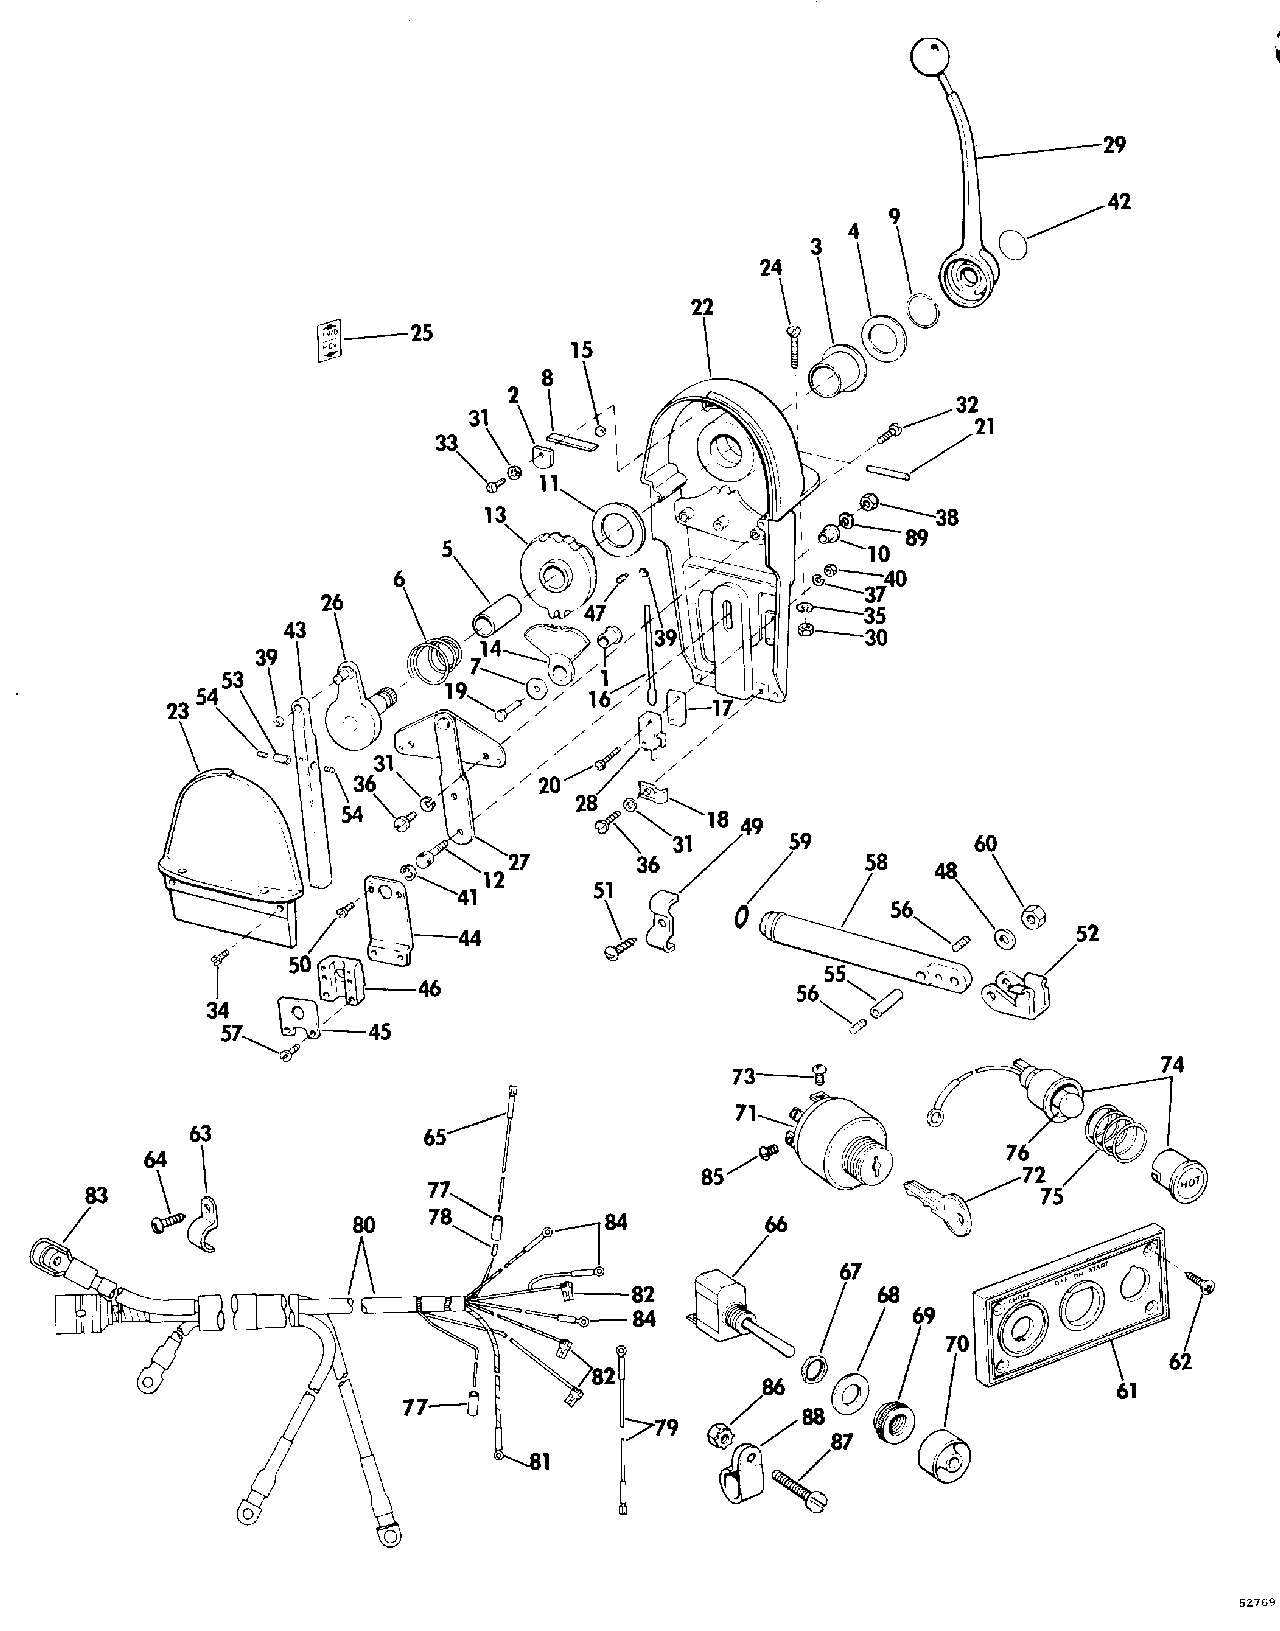 1975 johnson 50 hp outboard wiring diagram